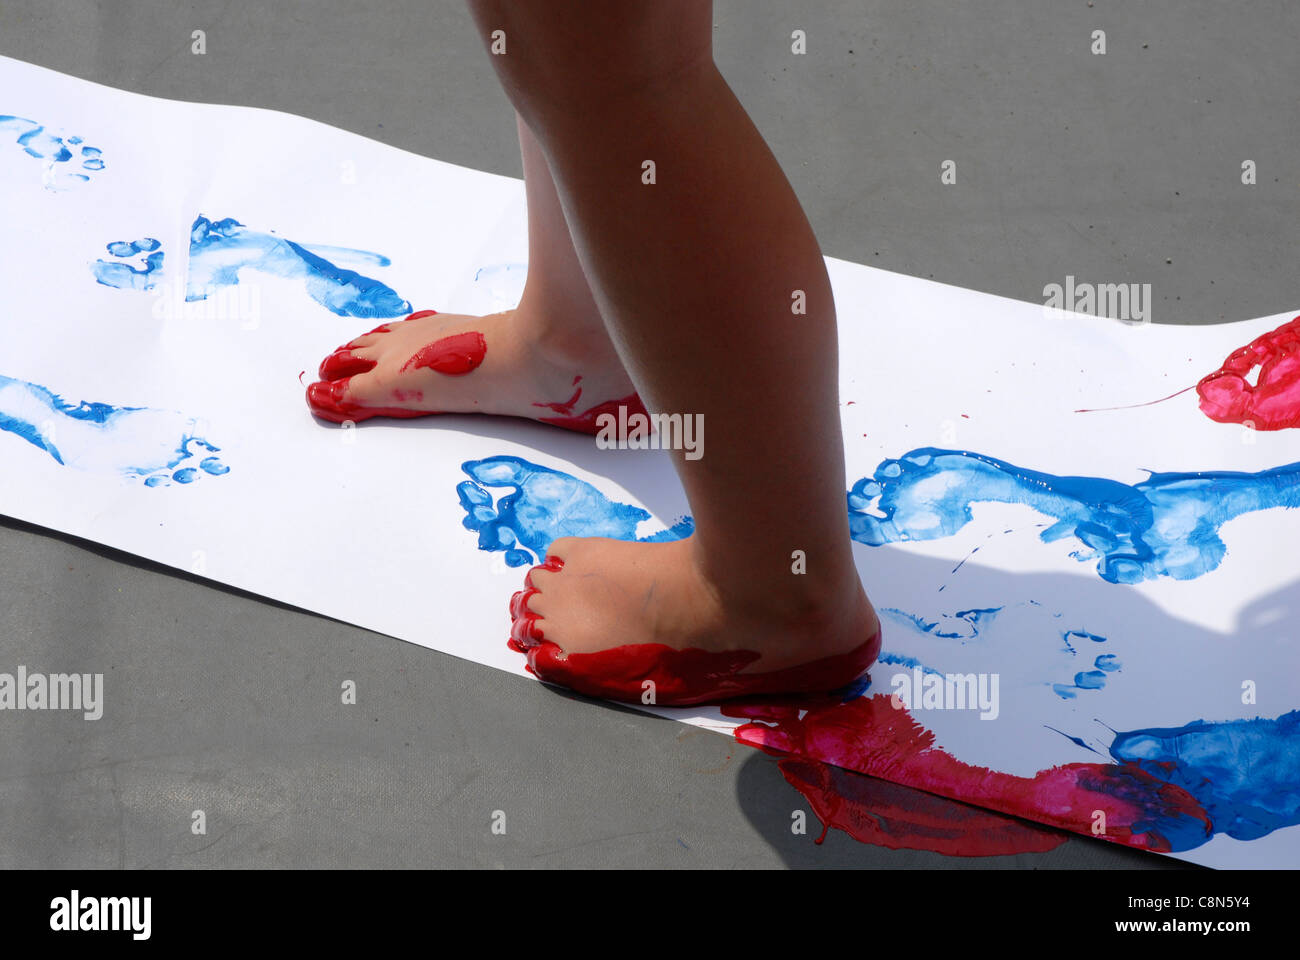 Nursery child painting footprints by walking in paint with ...